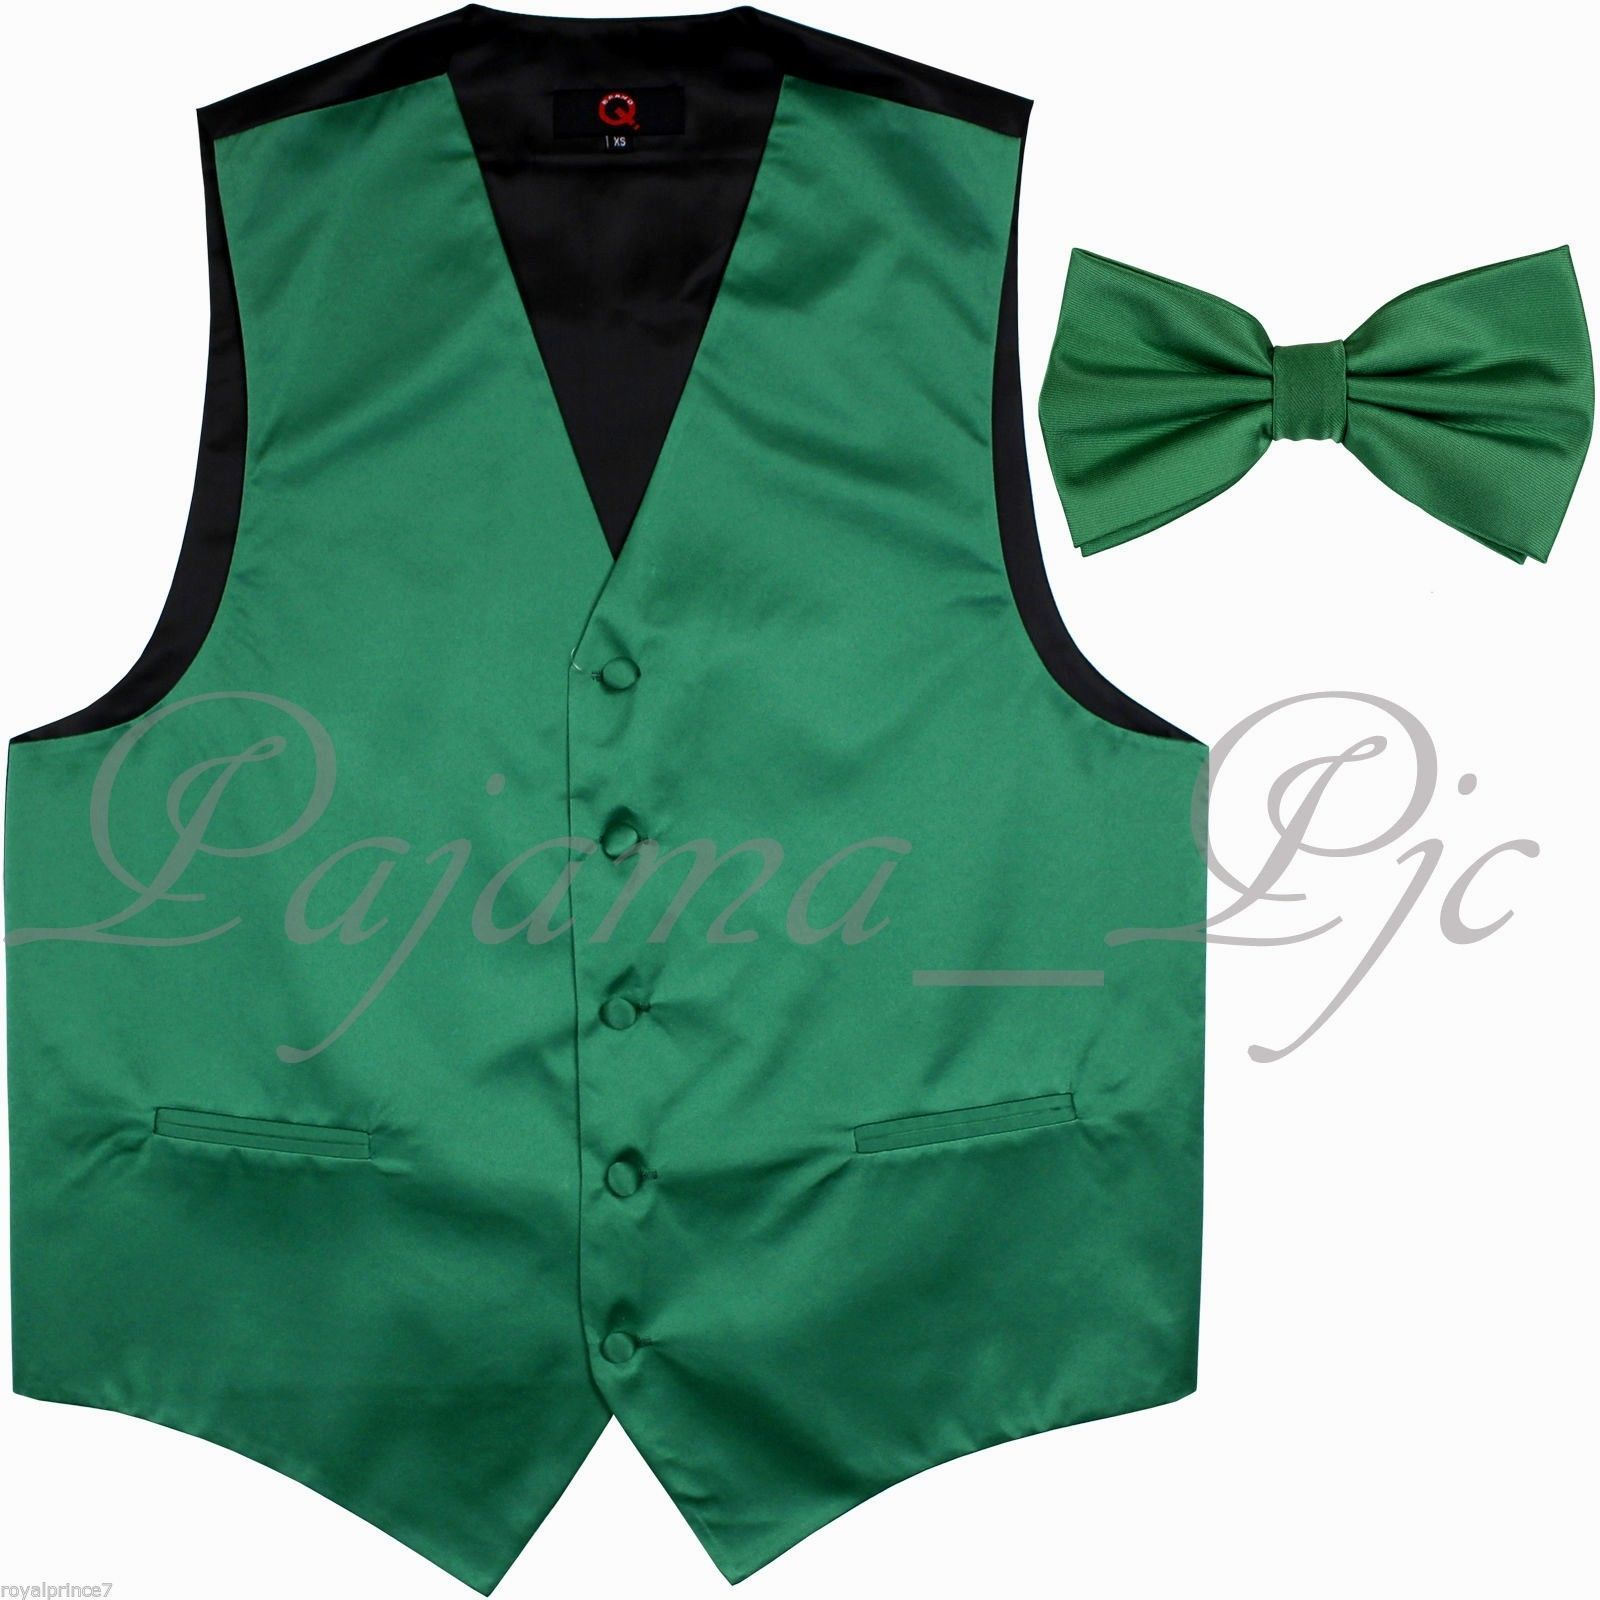 Emerald Green Solid Tuxedo Suit Vest and 50 similar items